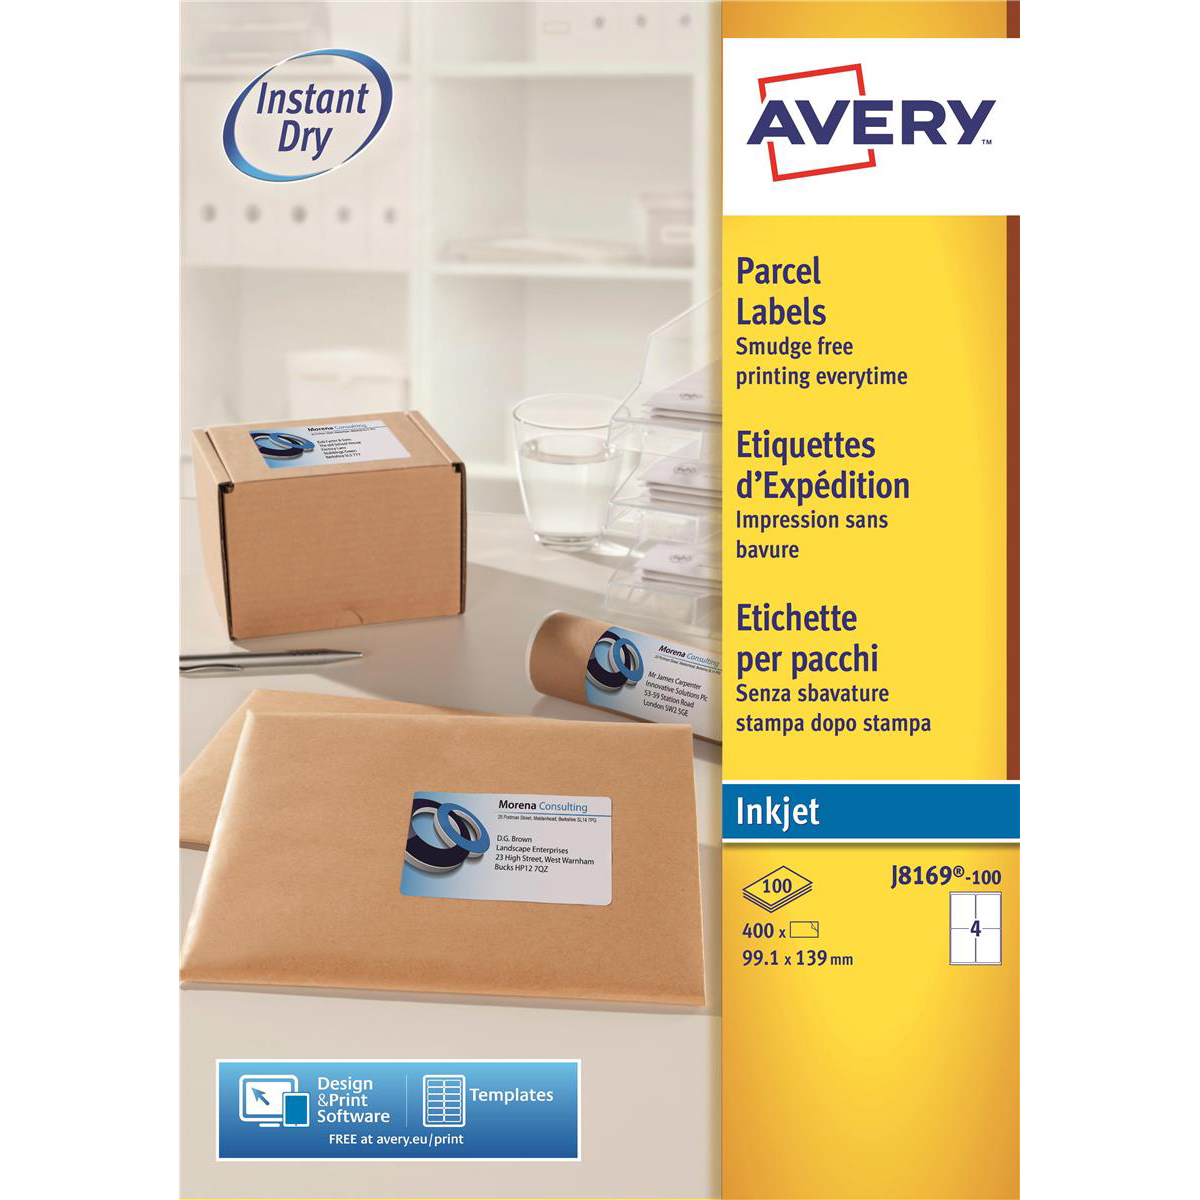 Avery Quick DRY Parcel Labels Inkjet 4 per Sheet 139x99 1mm